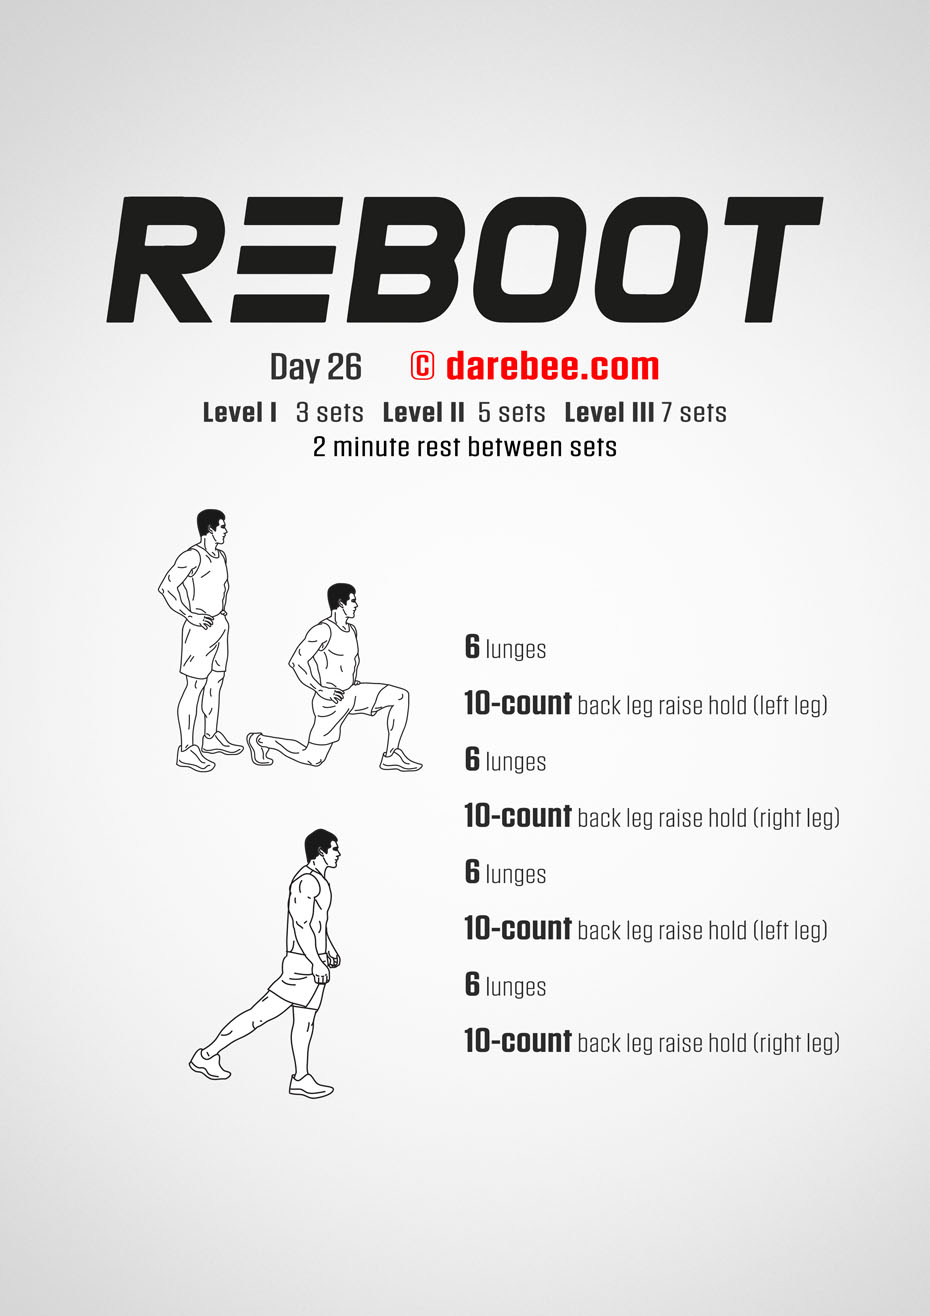 Reboot - No-Equipment Fitness Program by DAREBEE